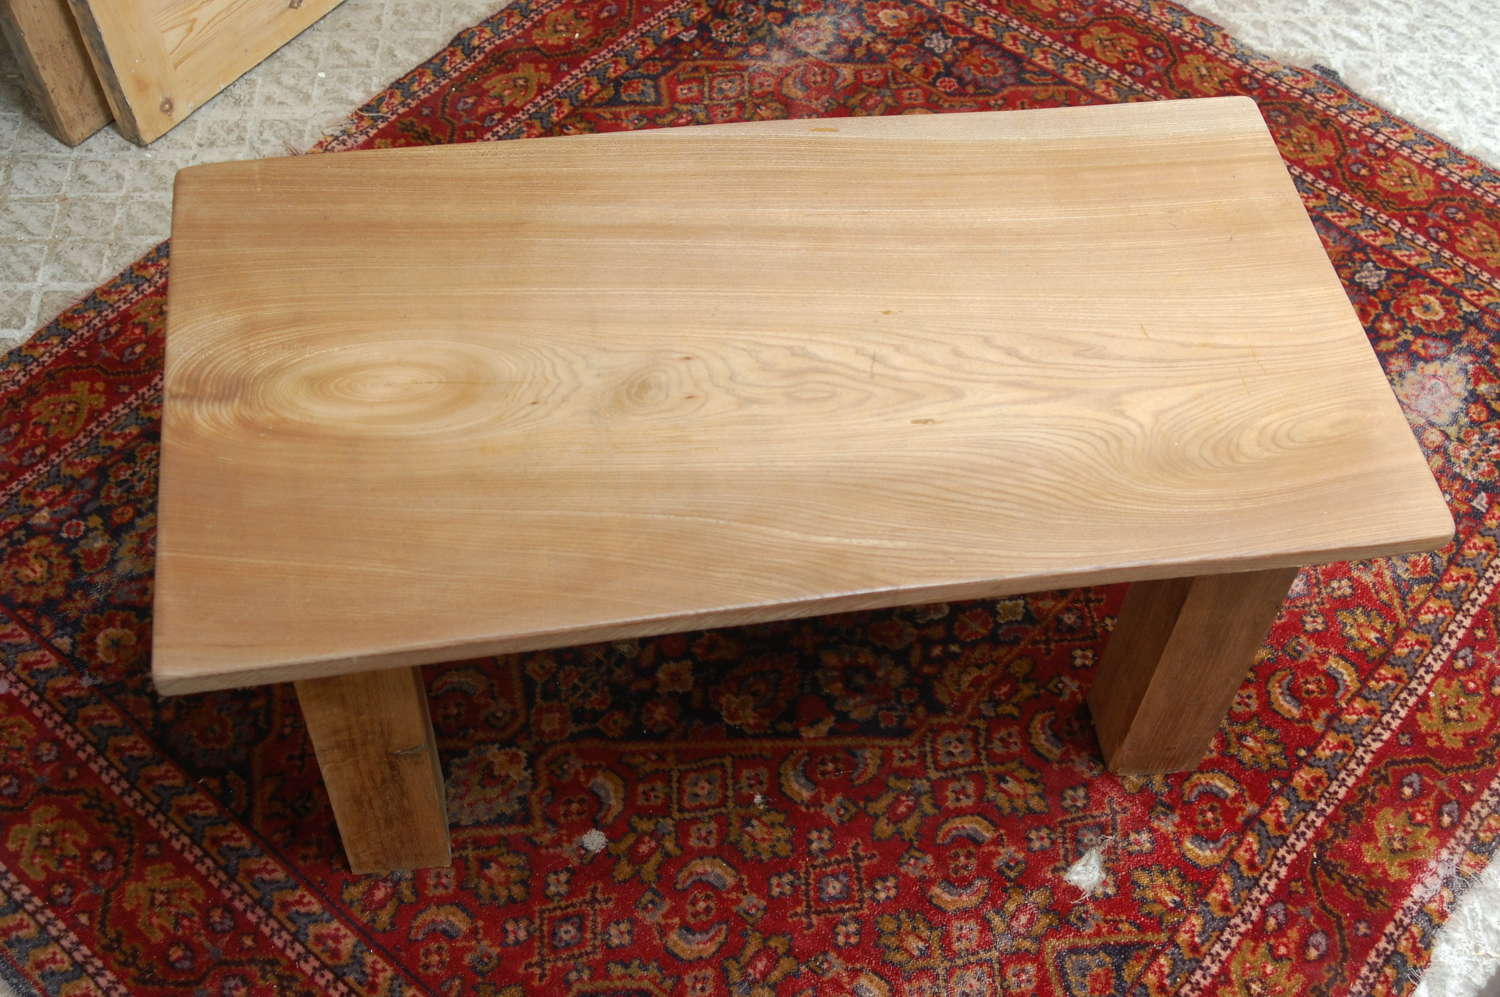 M1392 AN ELM AND OAK COFFEE TABLE MADE USING RECLAIMED TIMBER